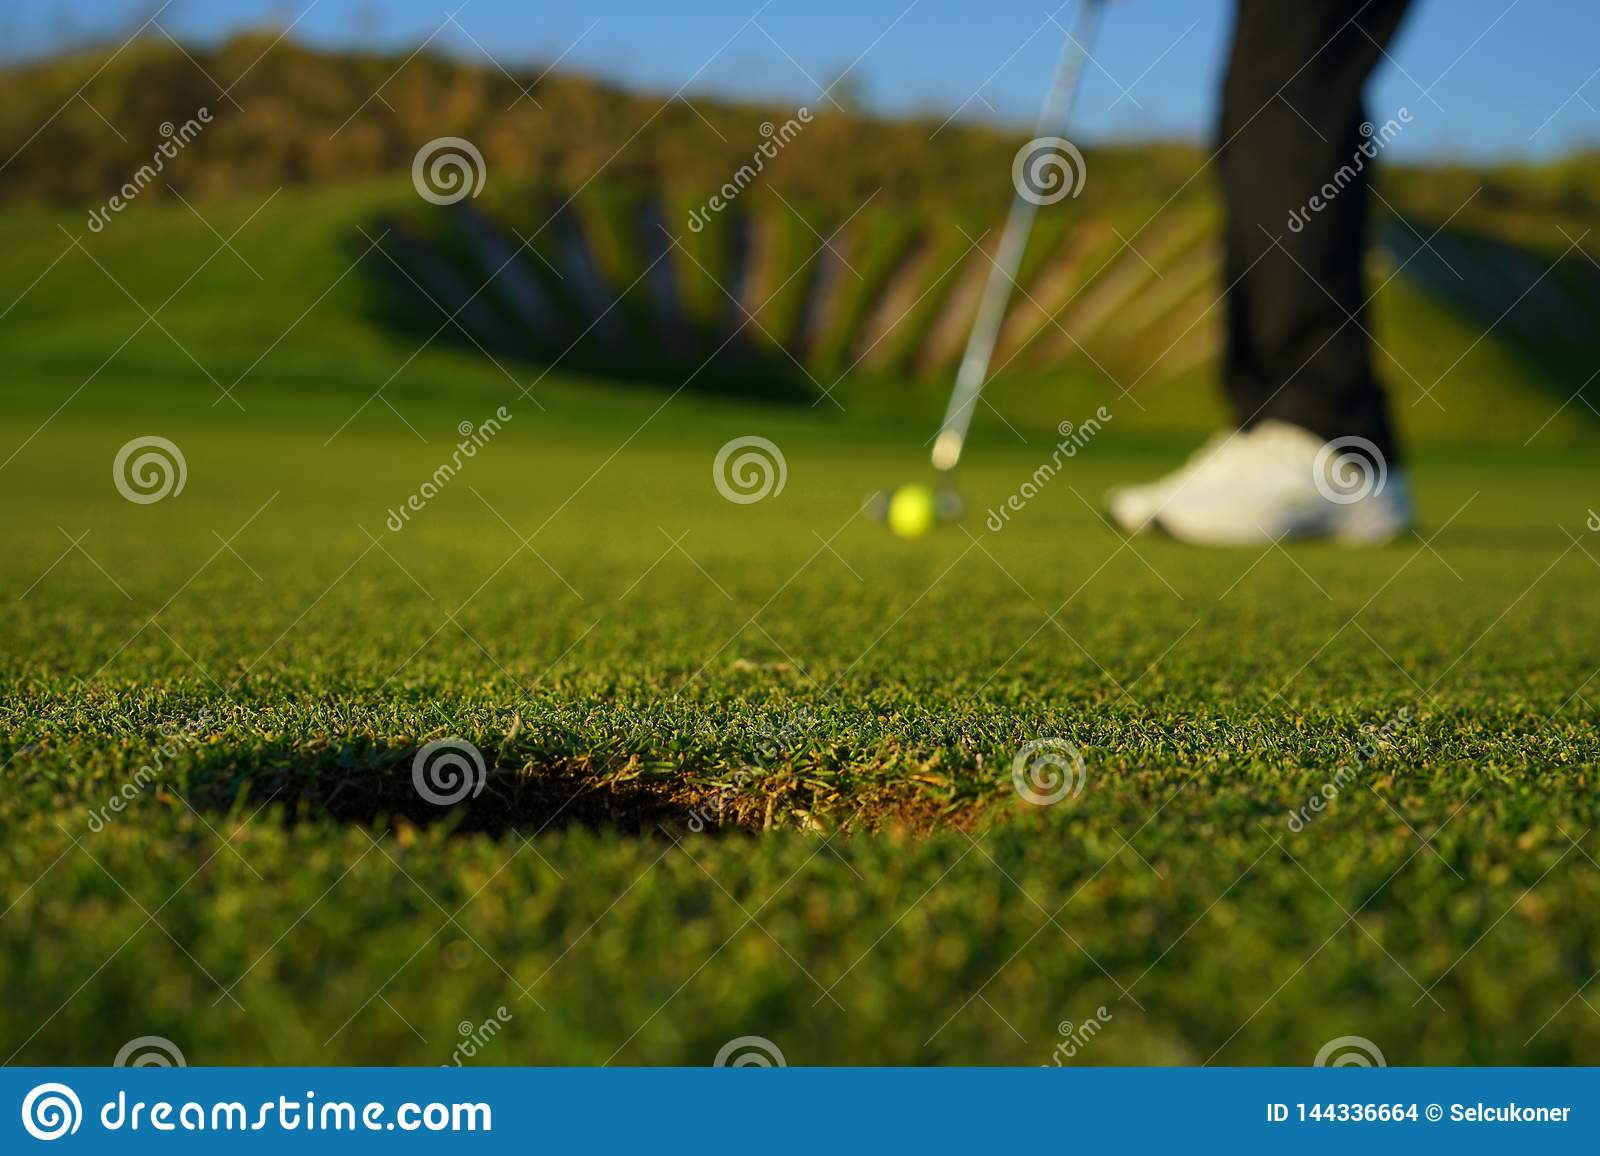 The golf player and the golf ball